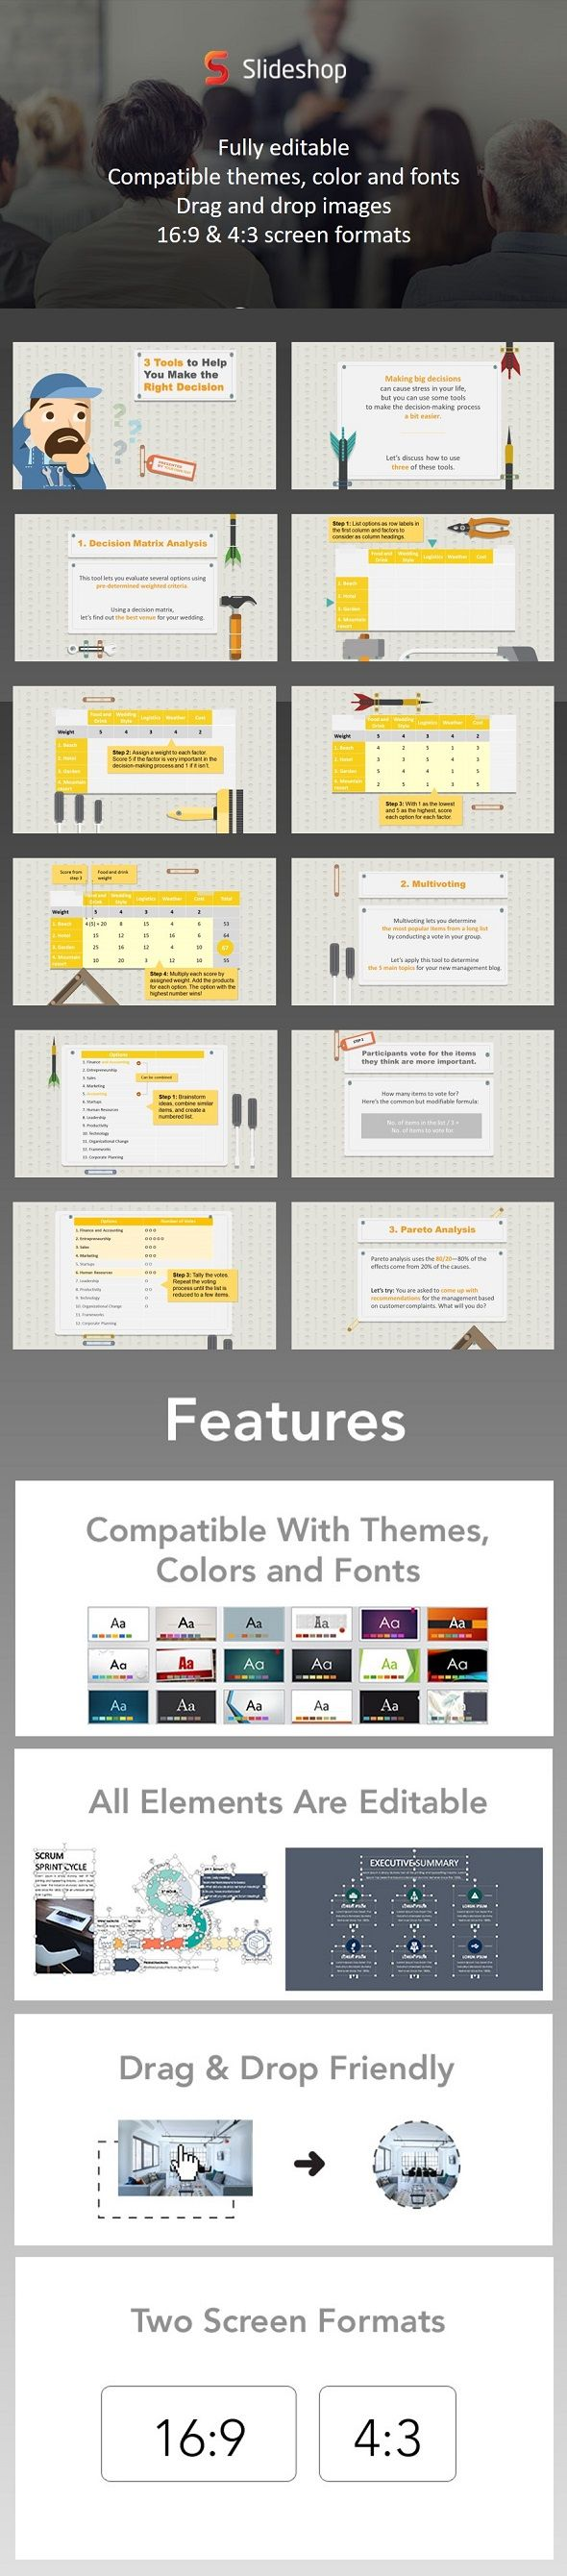 493 best businesses powerpoint presentation images on pinterest 3 tools to help you make the right decision toneelgroepblik Image collections